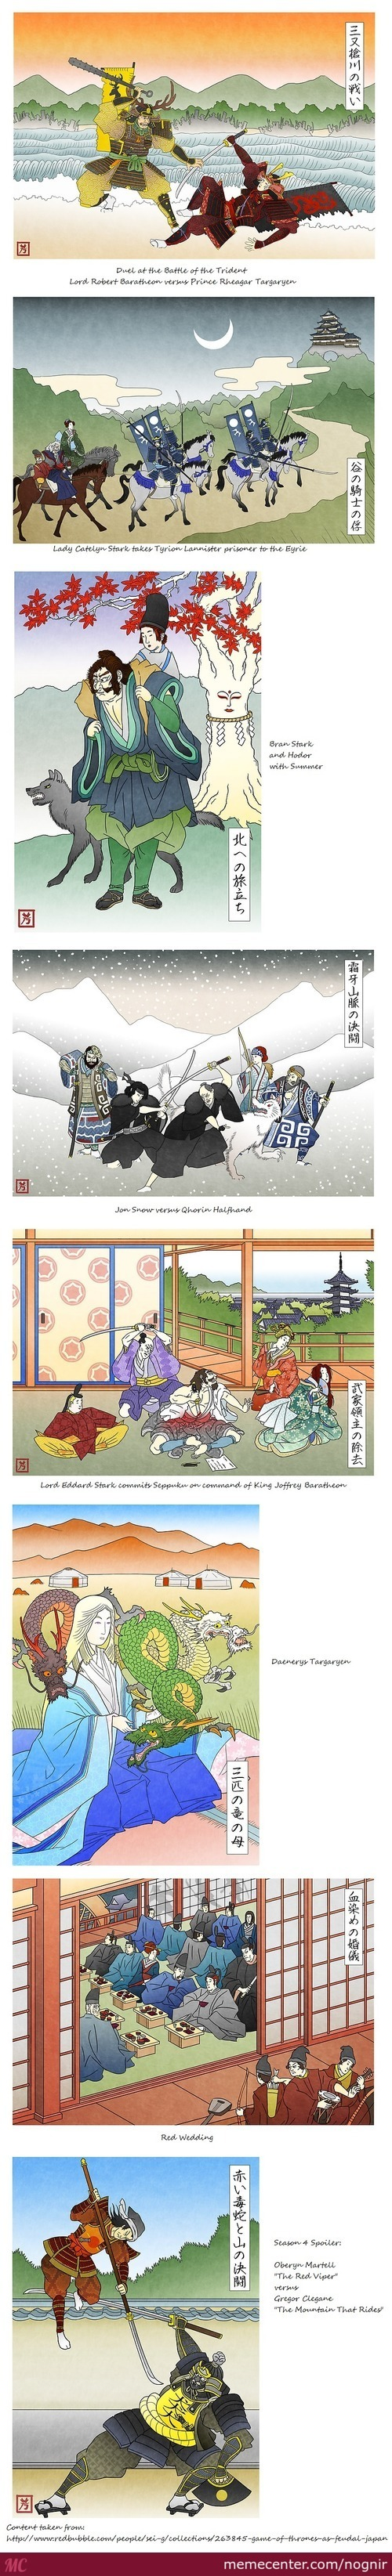 Paintings Of Game Of Thrones In Feudal Japan Style